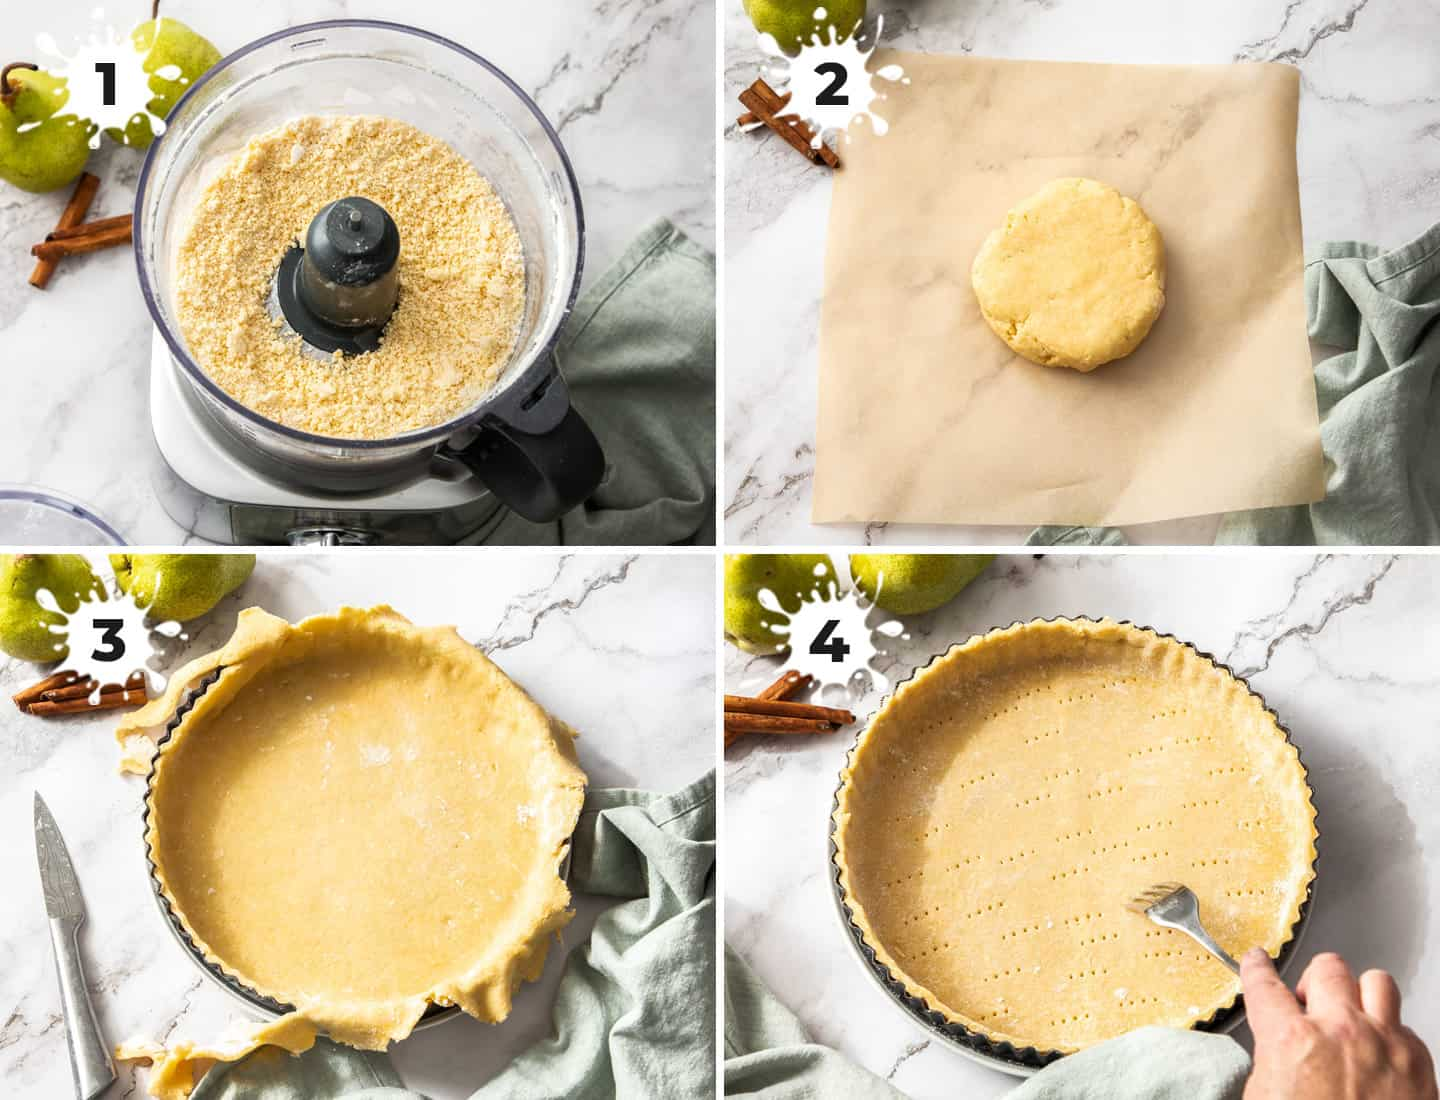 A collage of 4 images showing how to make the pastry crust.